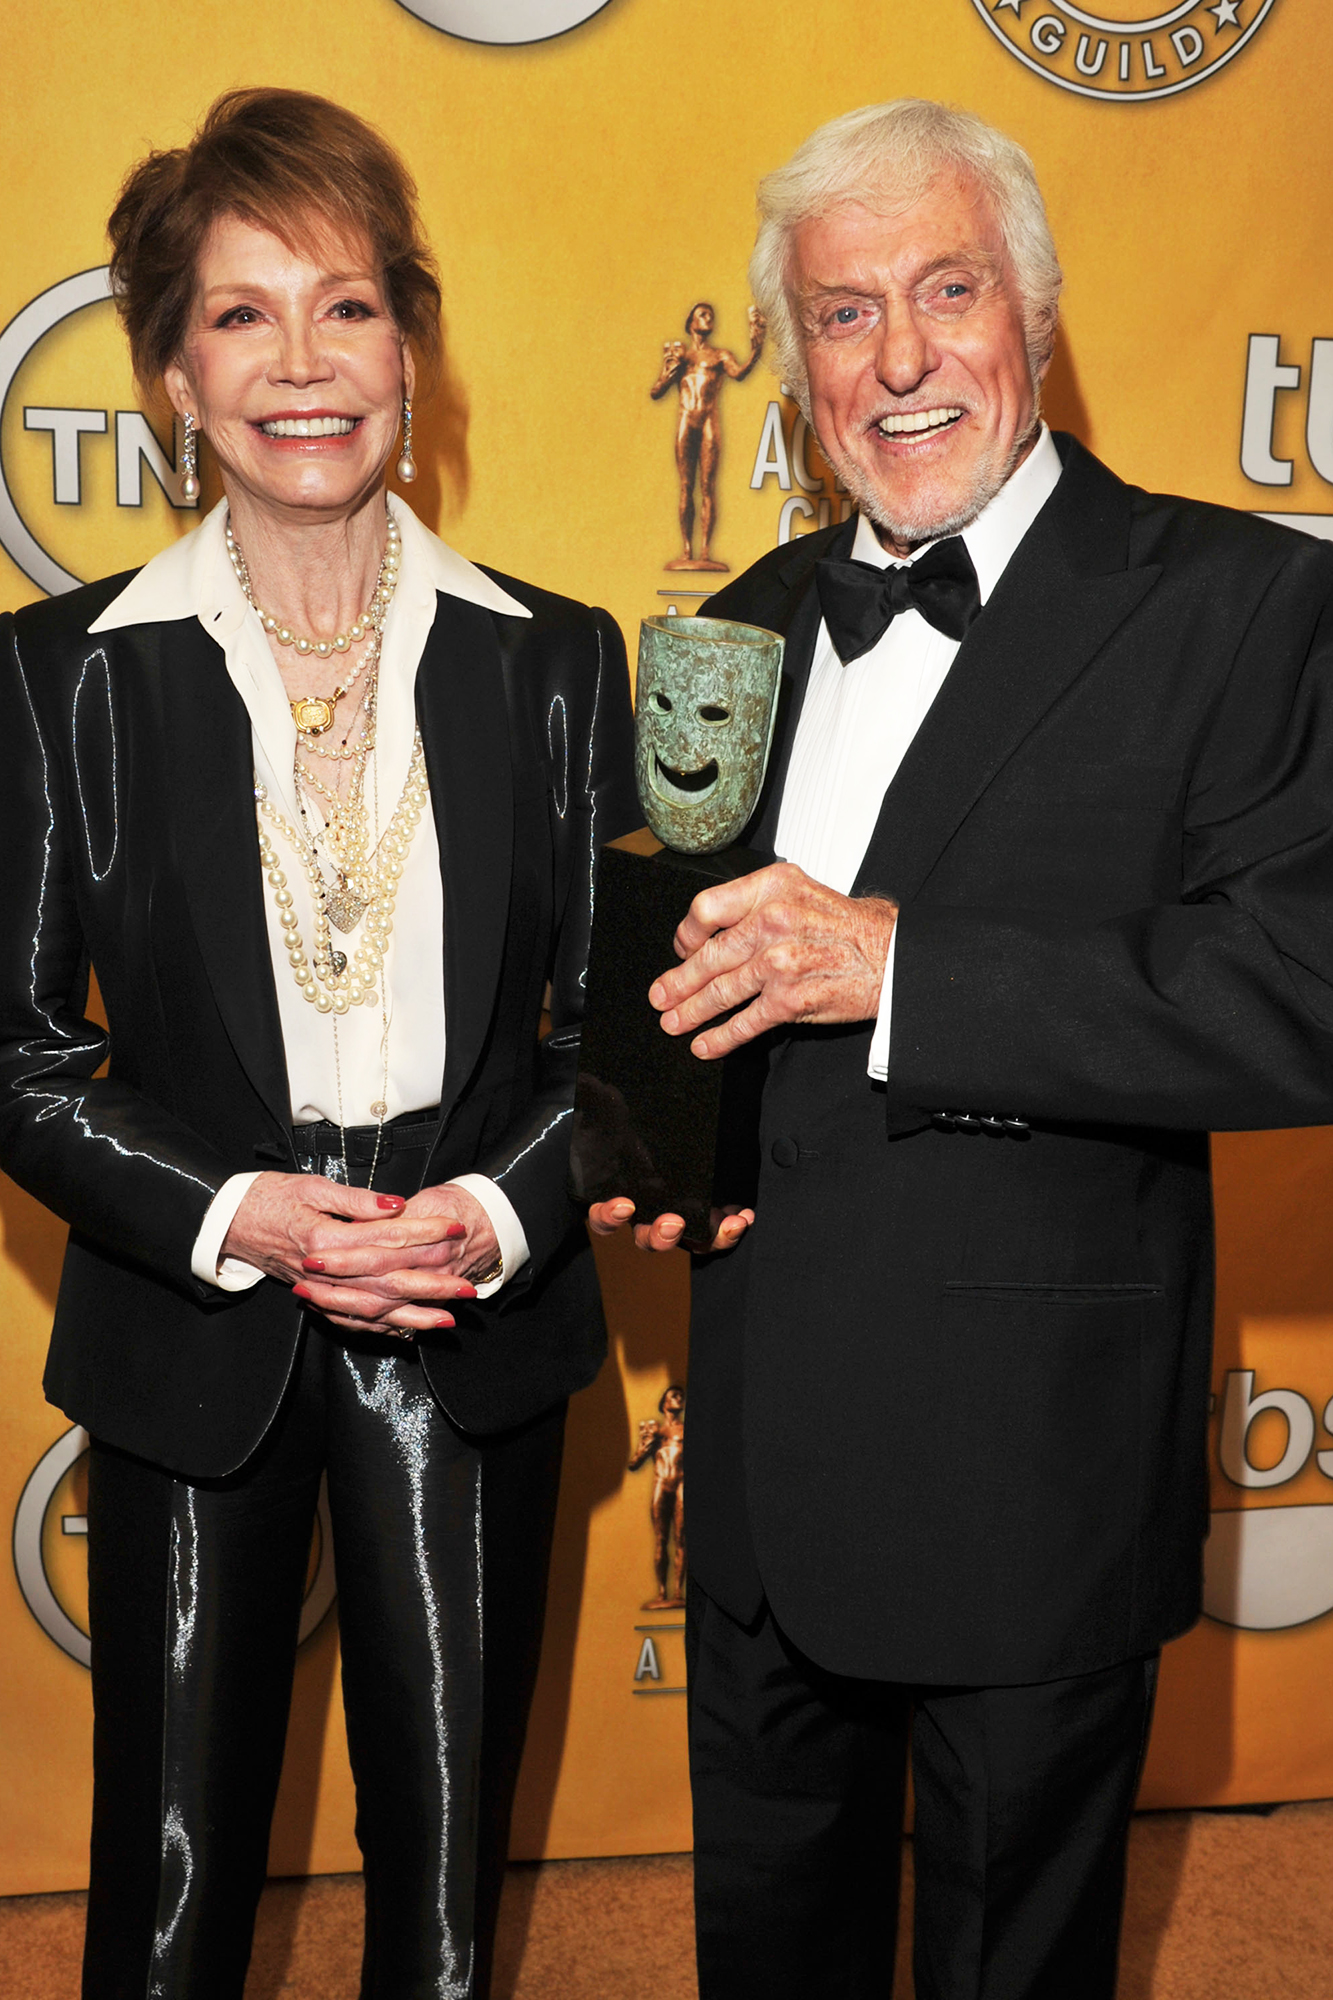 Mary Tyler Moore and Dick Van Dyke attend The 18th Annual Screen Actors Guild Awards, on Jan. 29, 2012 in Los Angeles.